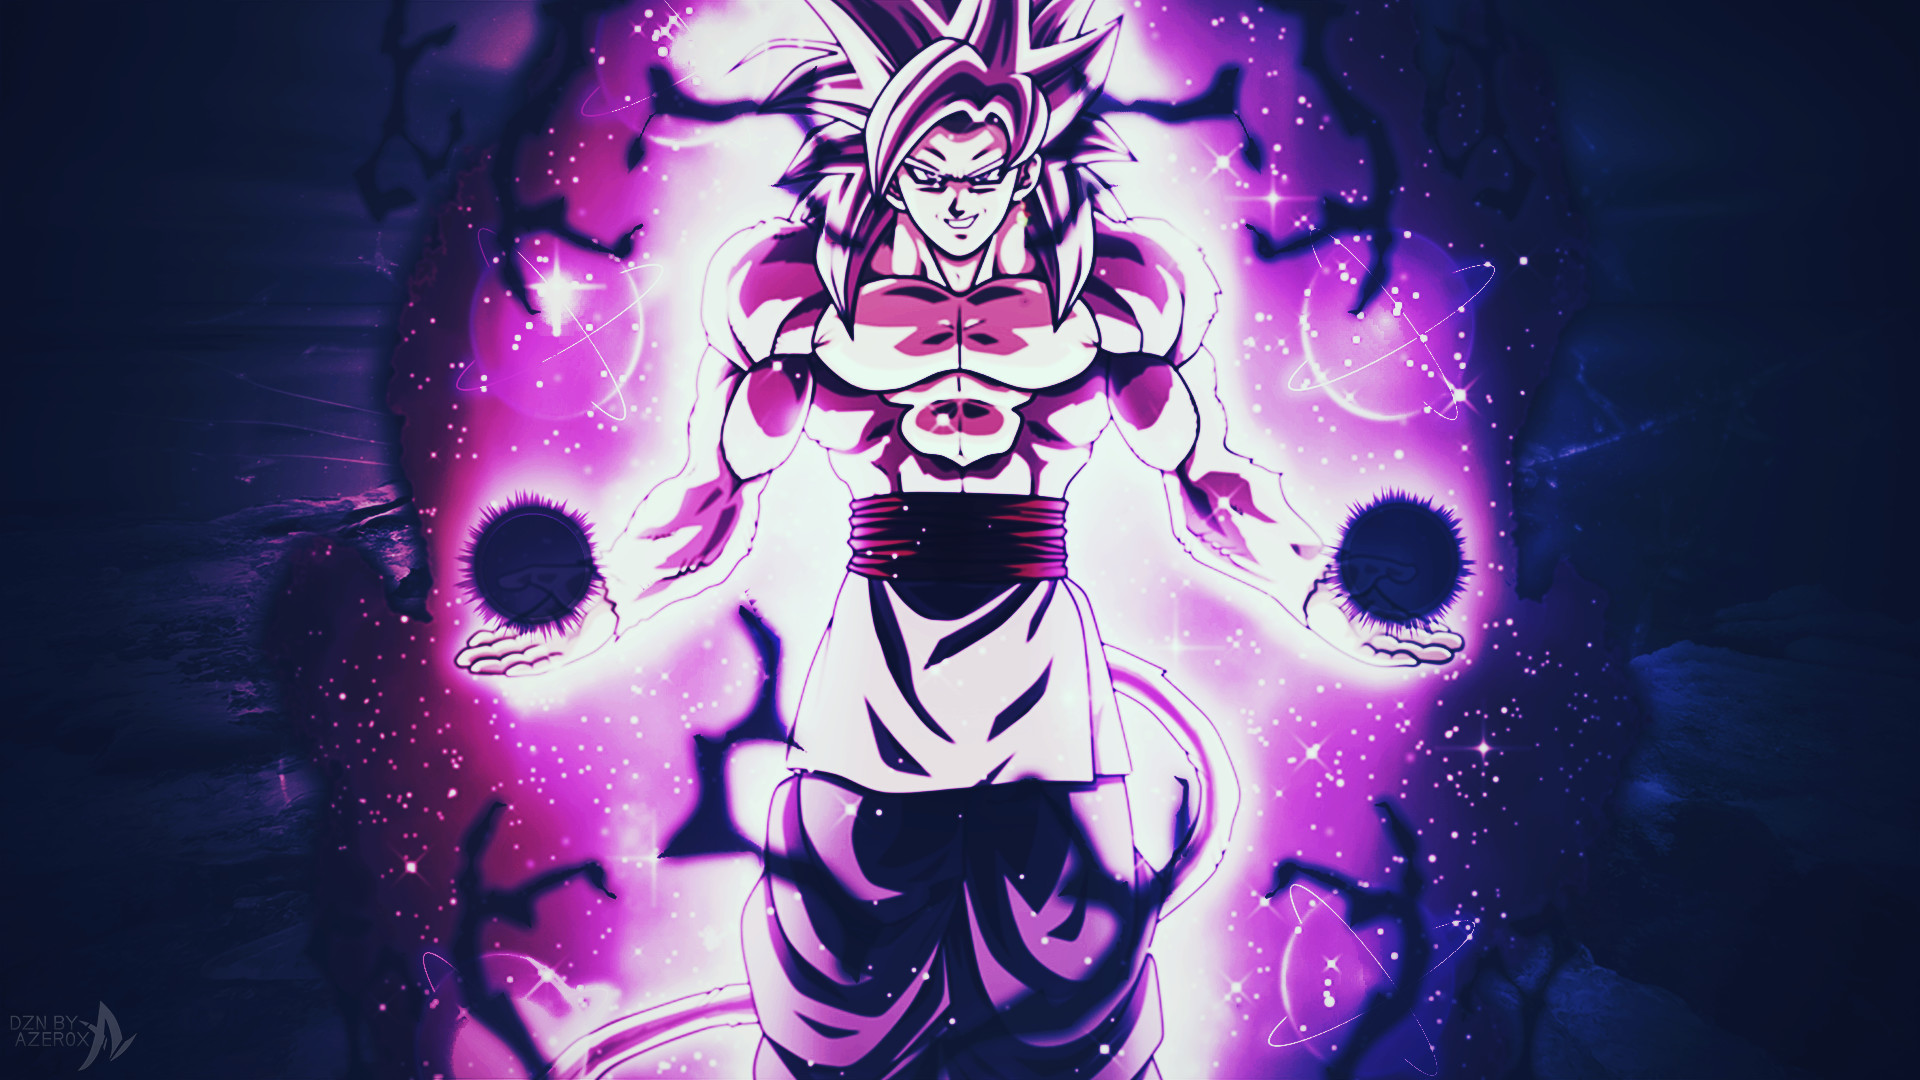 Goku Black Wallpaper 1080p Posted By Sarah Walker